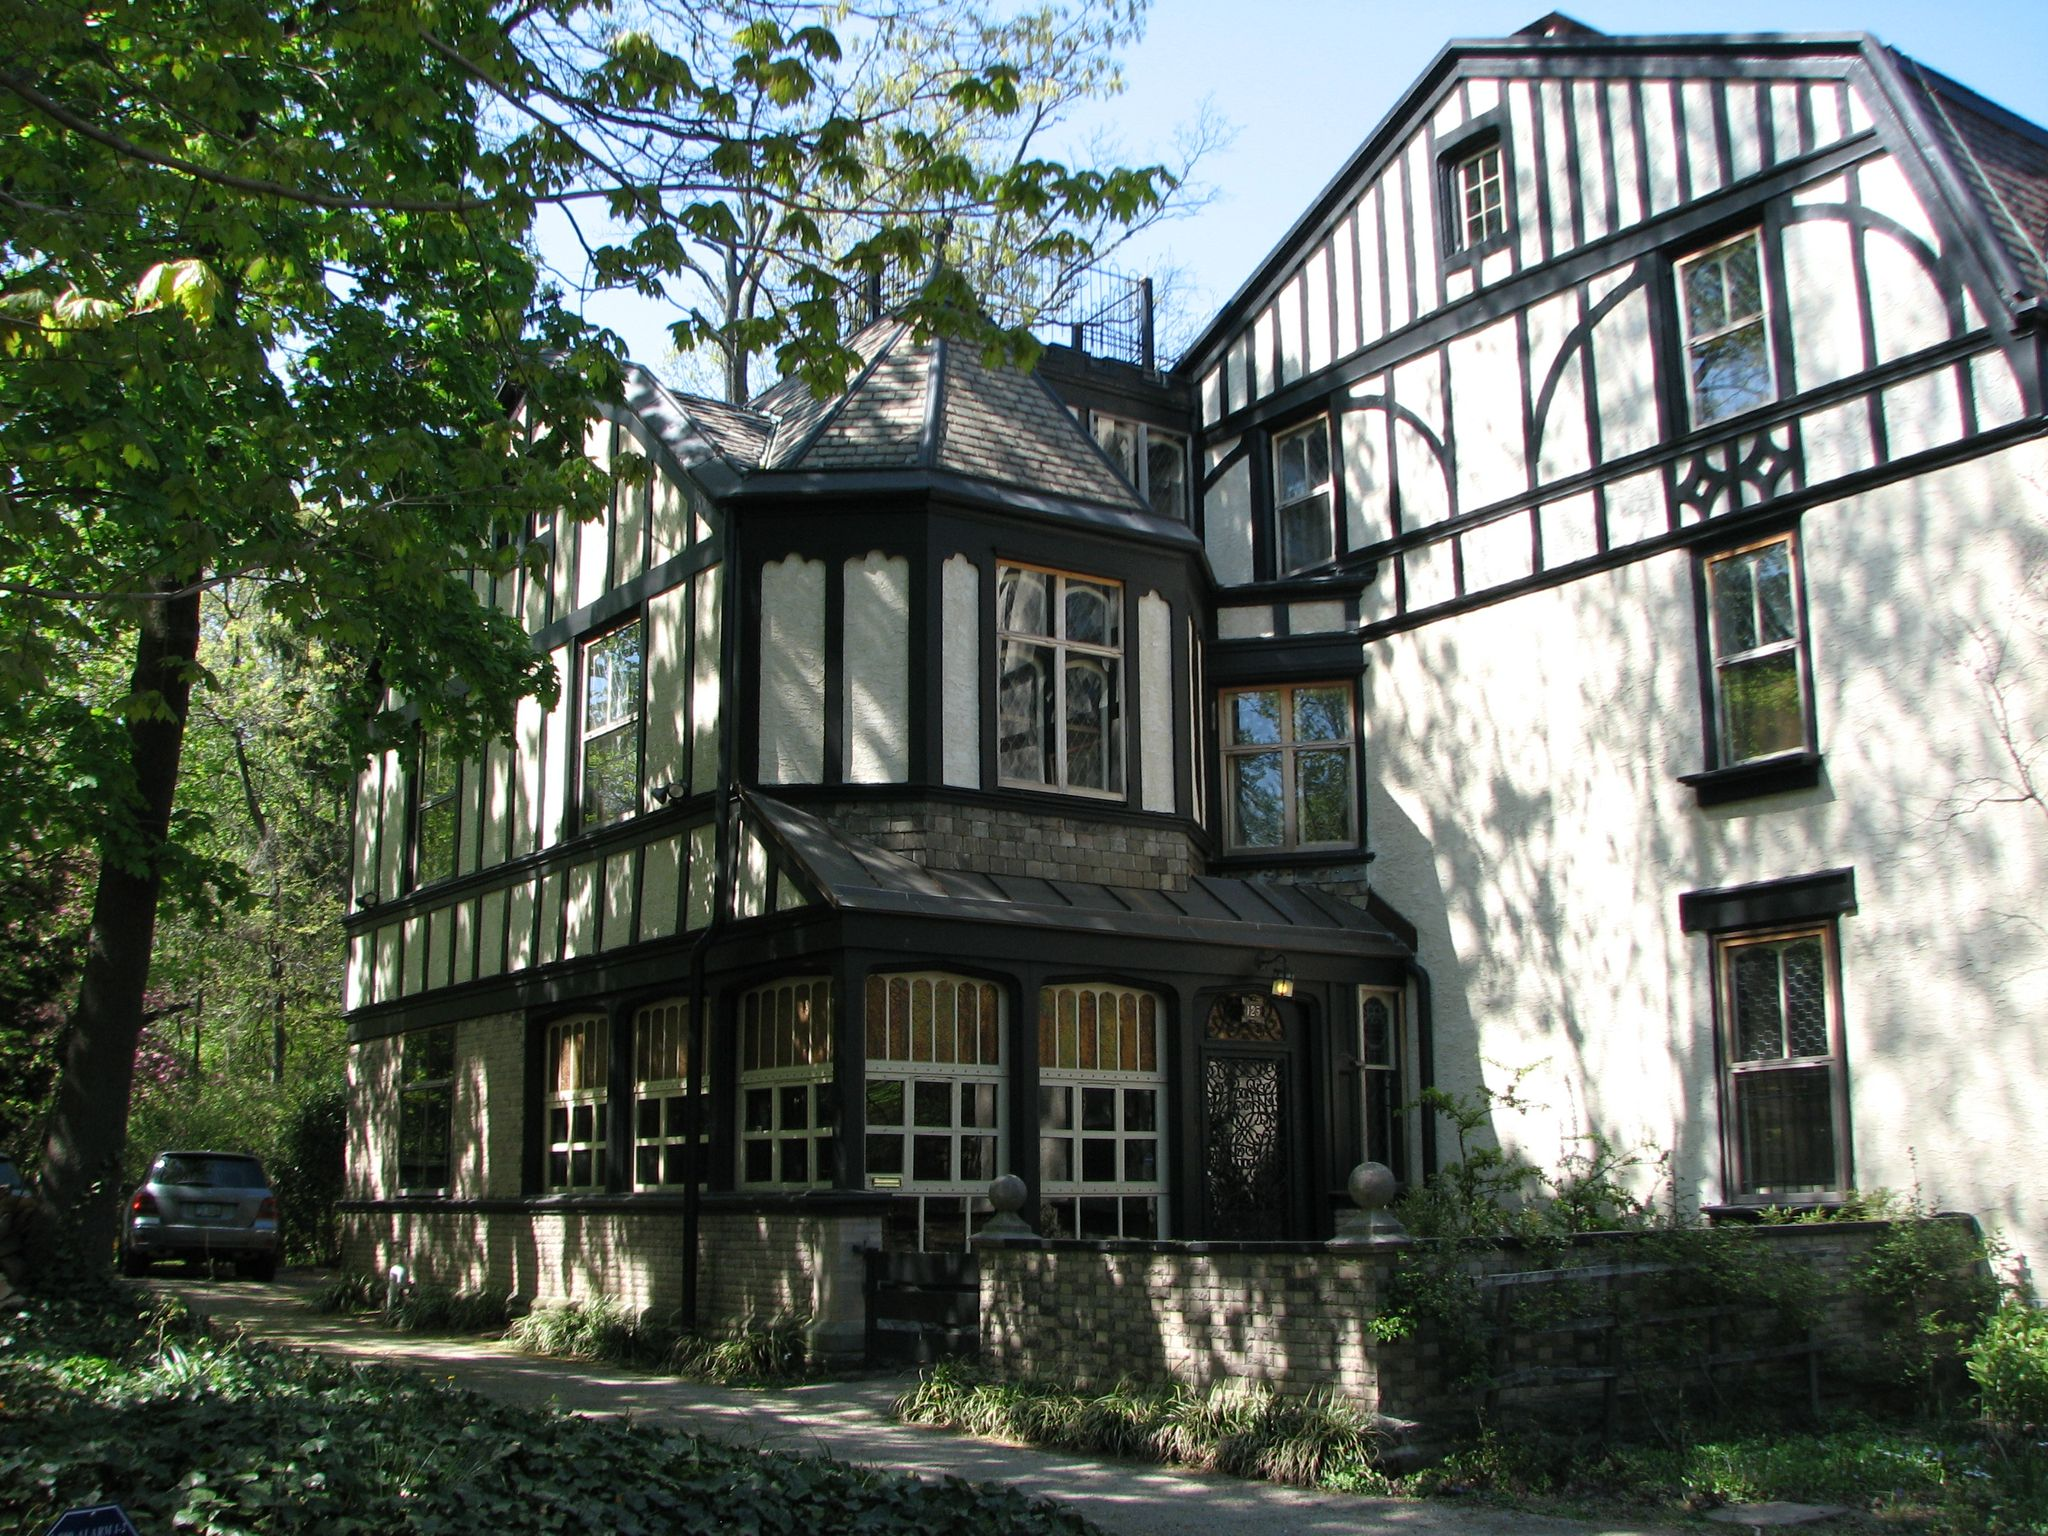 The Flemish Dutch chalet at 125 West Walnut was designed by and was the home of George T. Pearson.